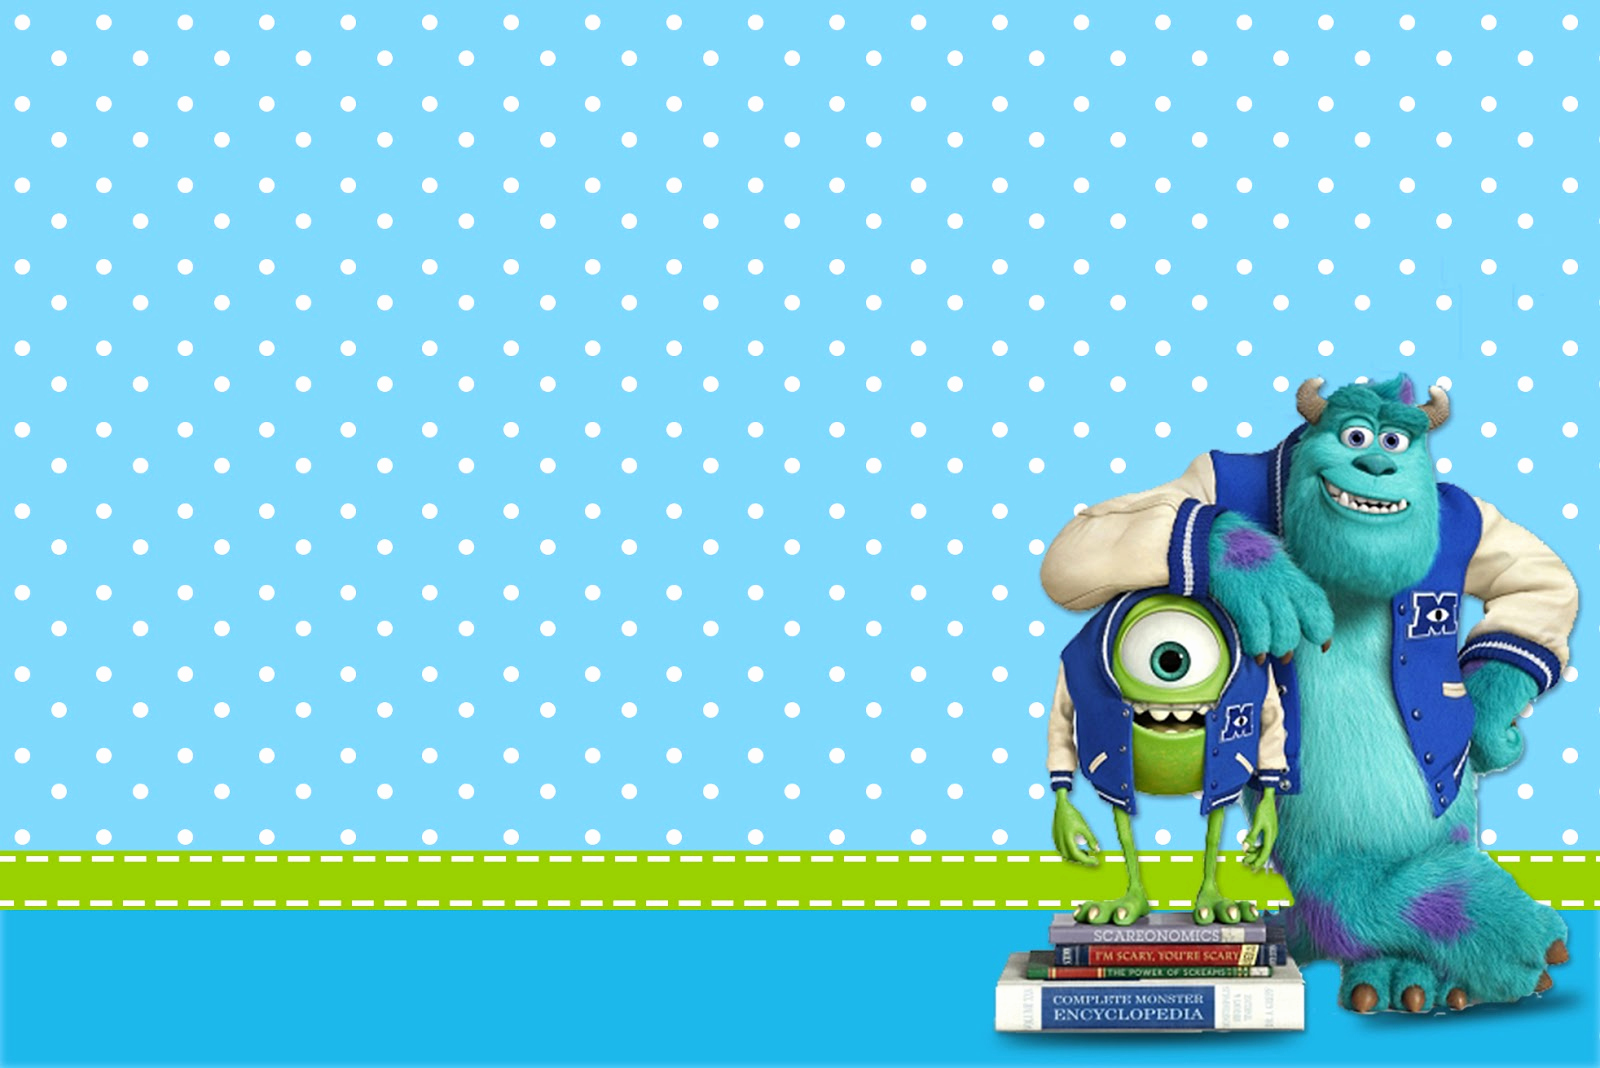 Free Monsters Inc Invitation Template Luxury Monster University Free Printable Party Invitations Oh